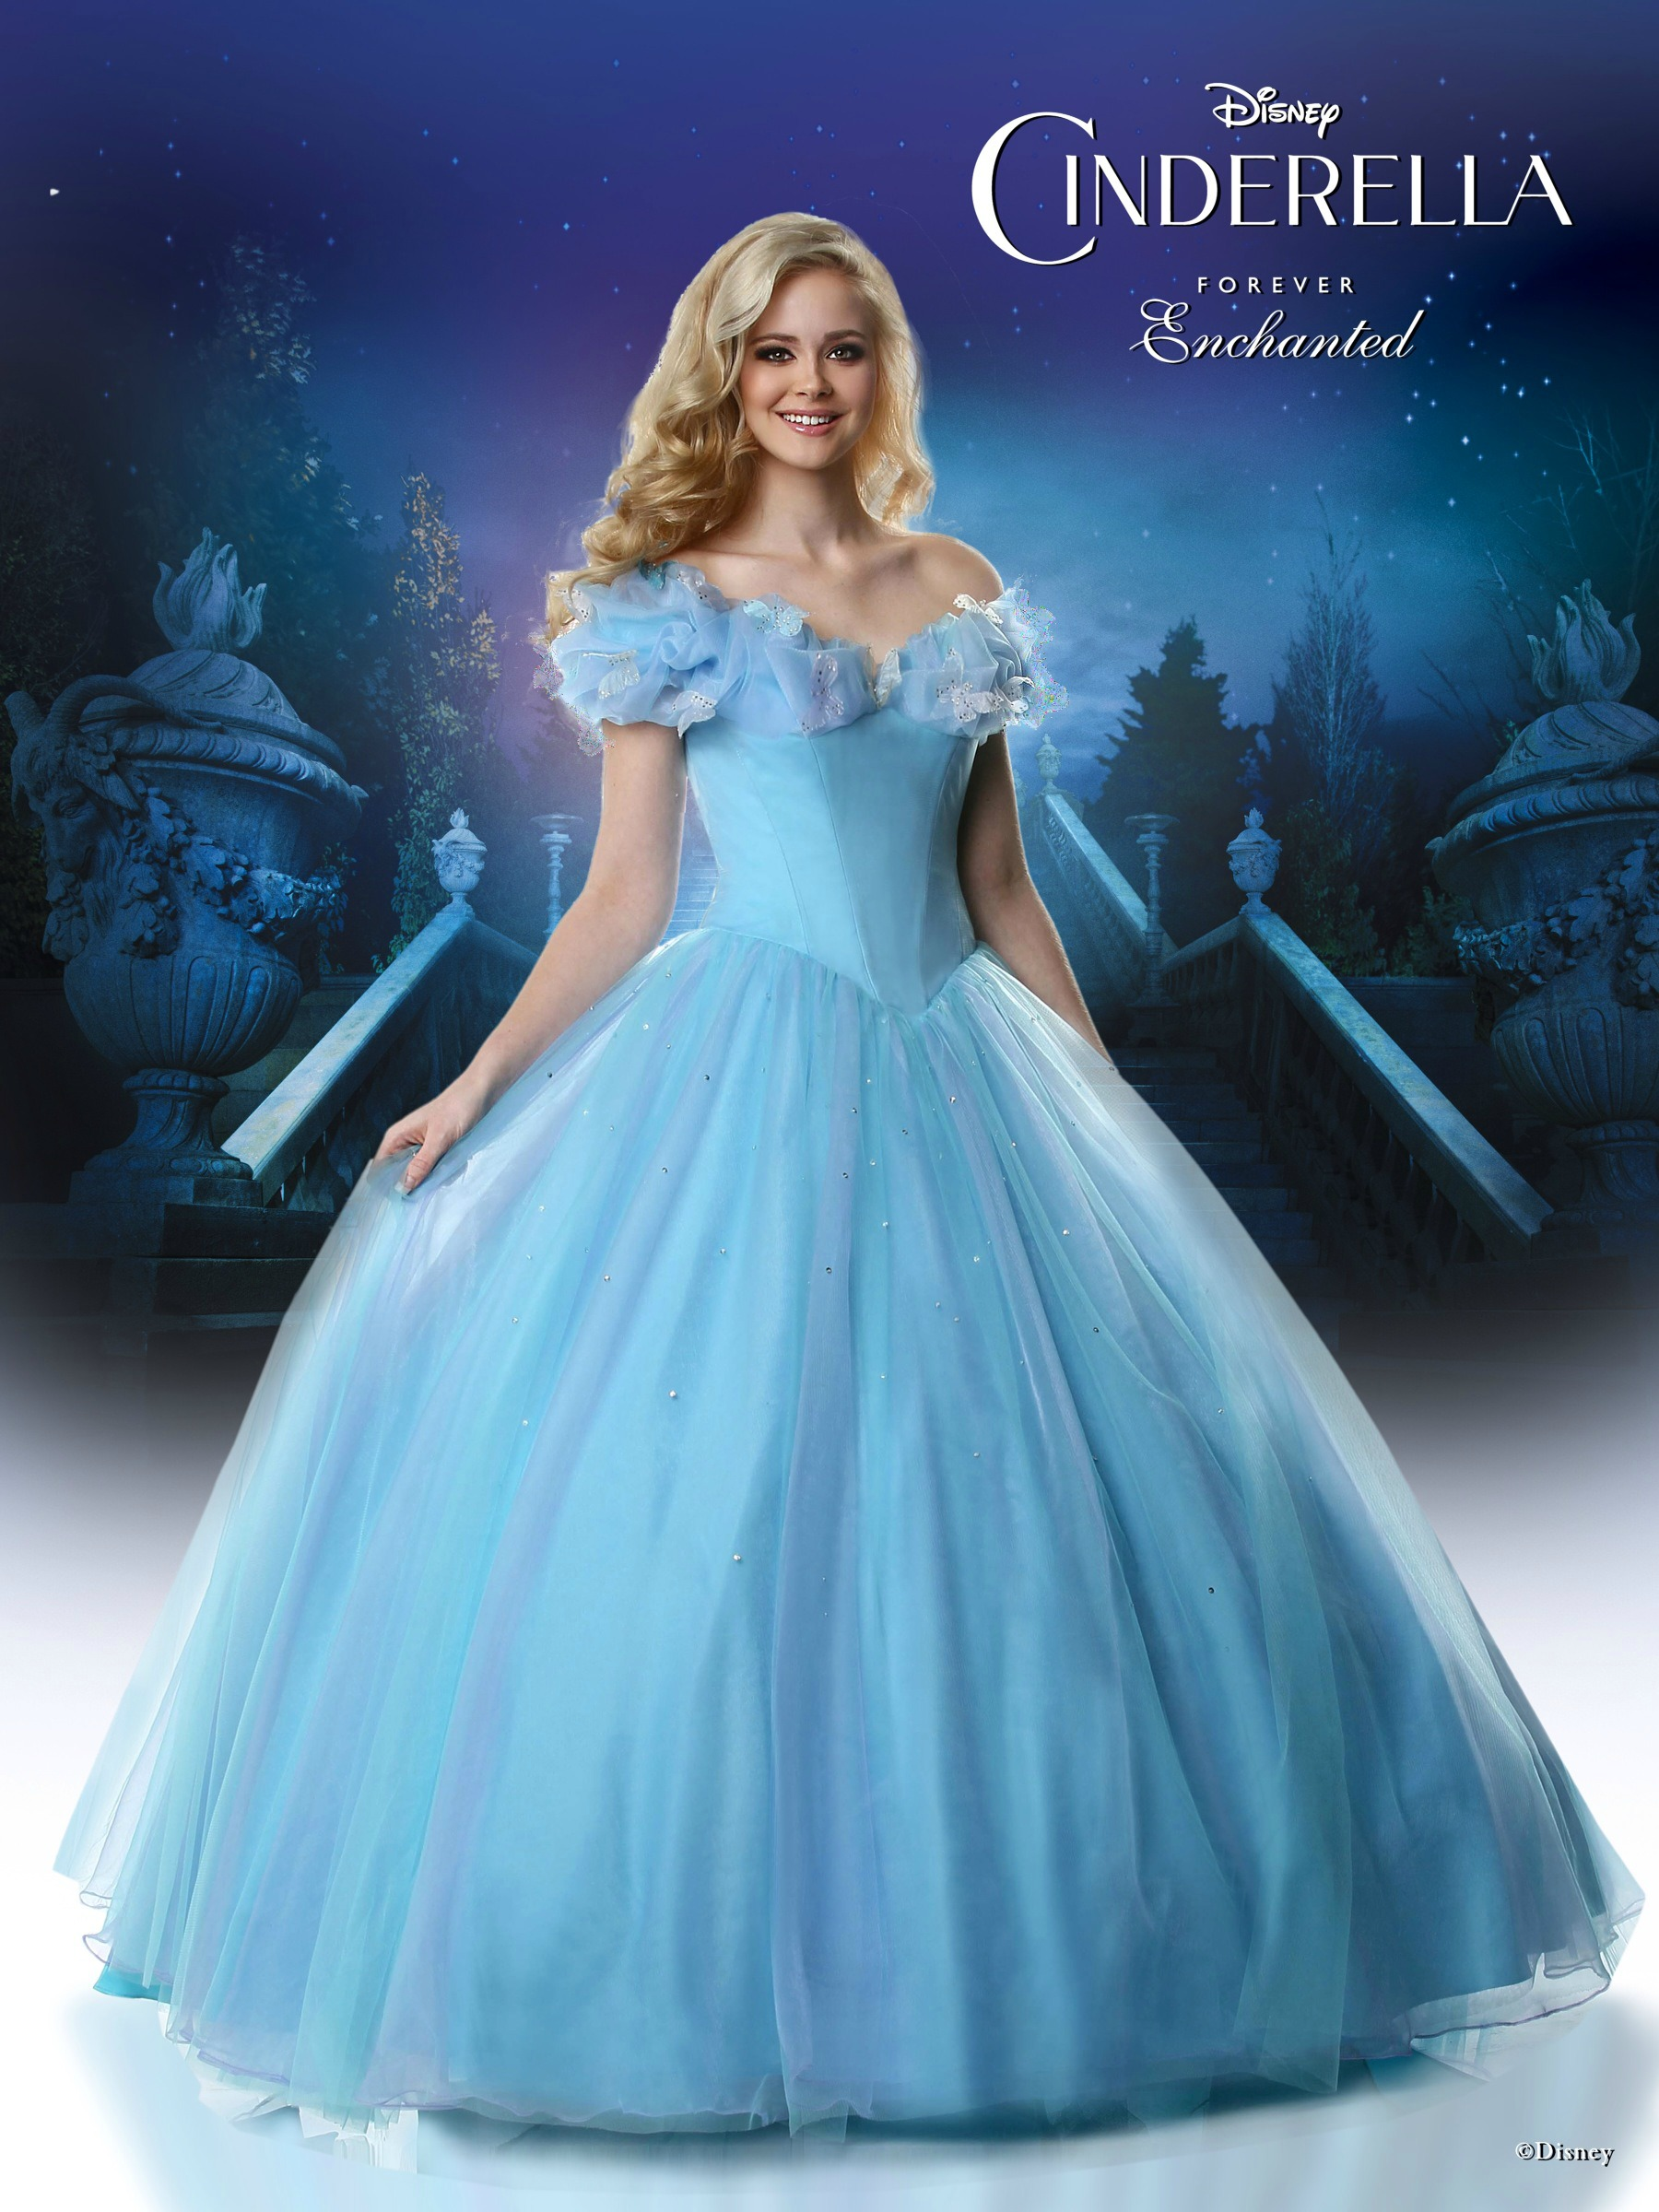 introducing the 2015 disney forever enchanted cinderella dress for prom mom fabulous. Black Bedroom Furniture Sets. Home Design Ideas